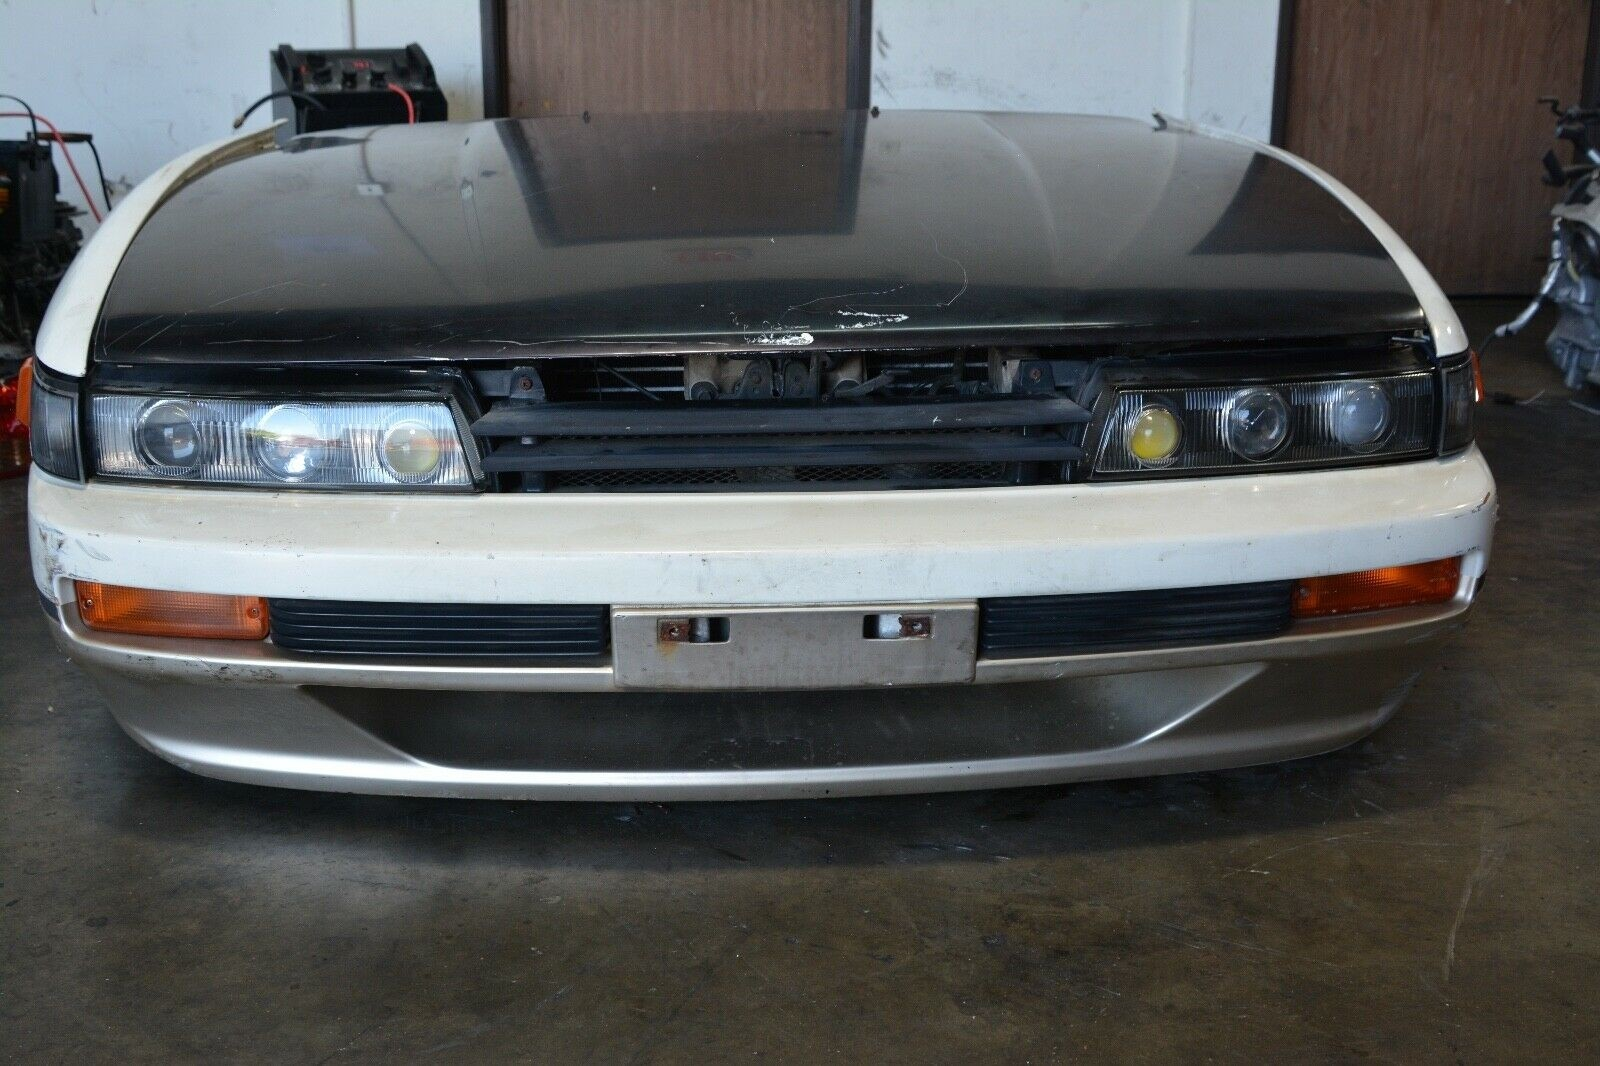 Nissan Silvia S13 Nose Cut Hood Bumper Head Lights Grill Nissan Silvia S13 Nose Cut Fenders Minor Scratches Rust Normal Wear And Tear Please Review Each Picture What You See Is What You